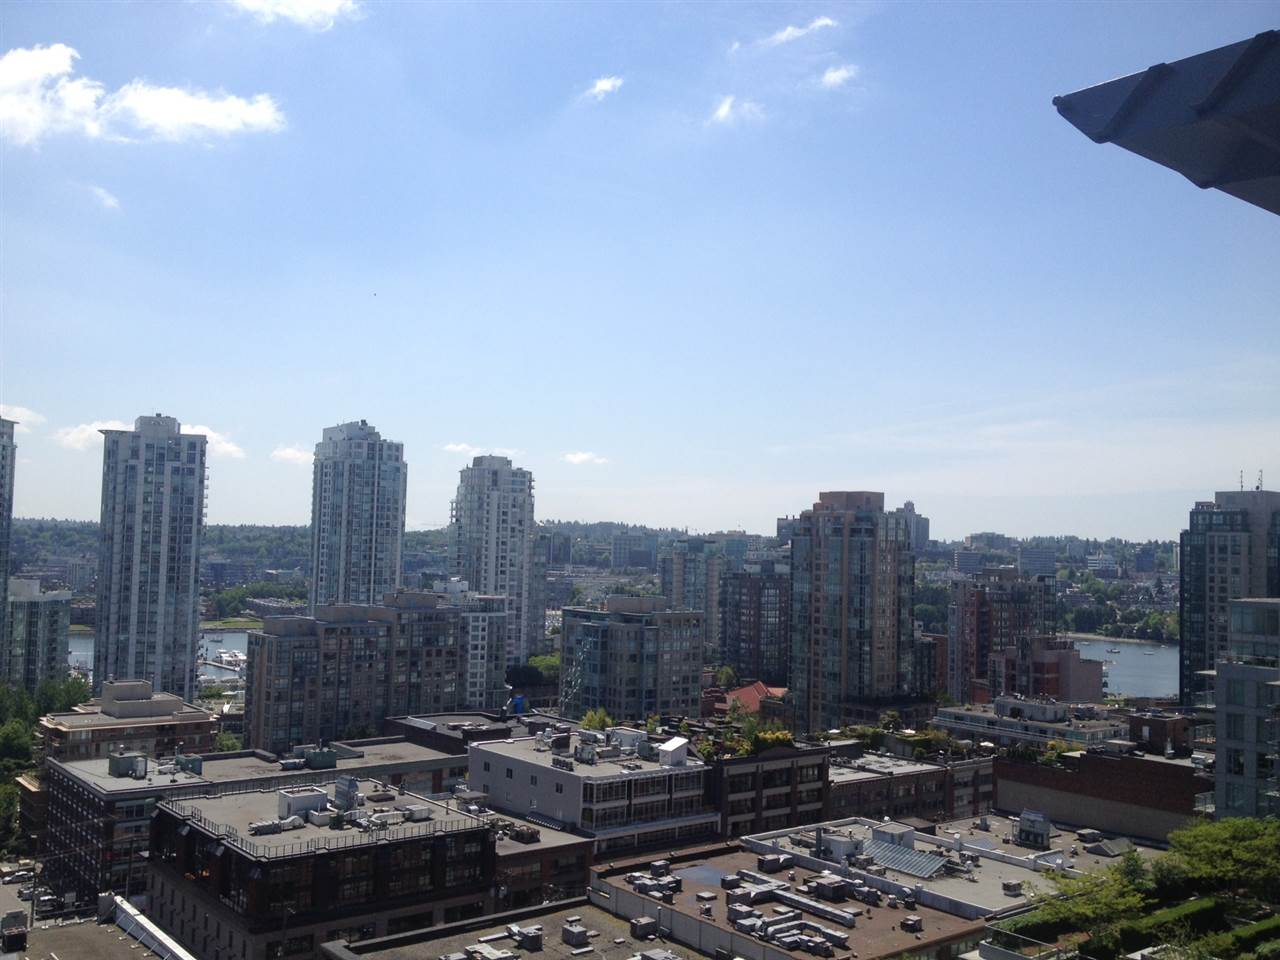 Photo 6: 1808 1088 RICHARDS Street in Vancouver: Yaletown Condo for sale (Vancouver West)  : MLS® # R2071276